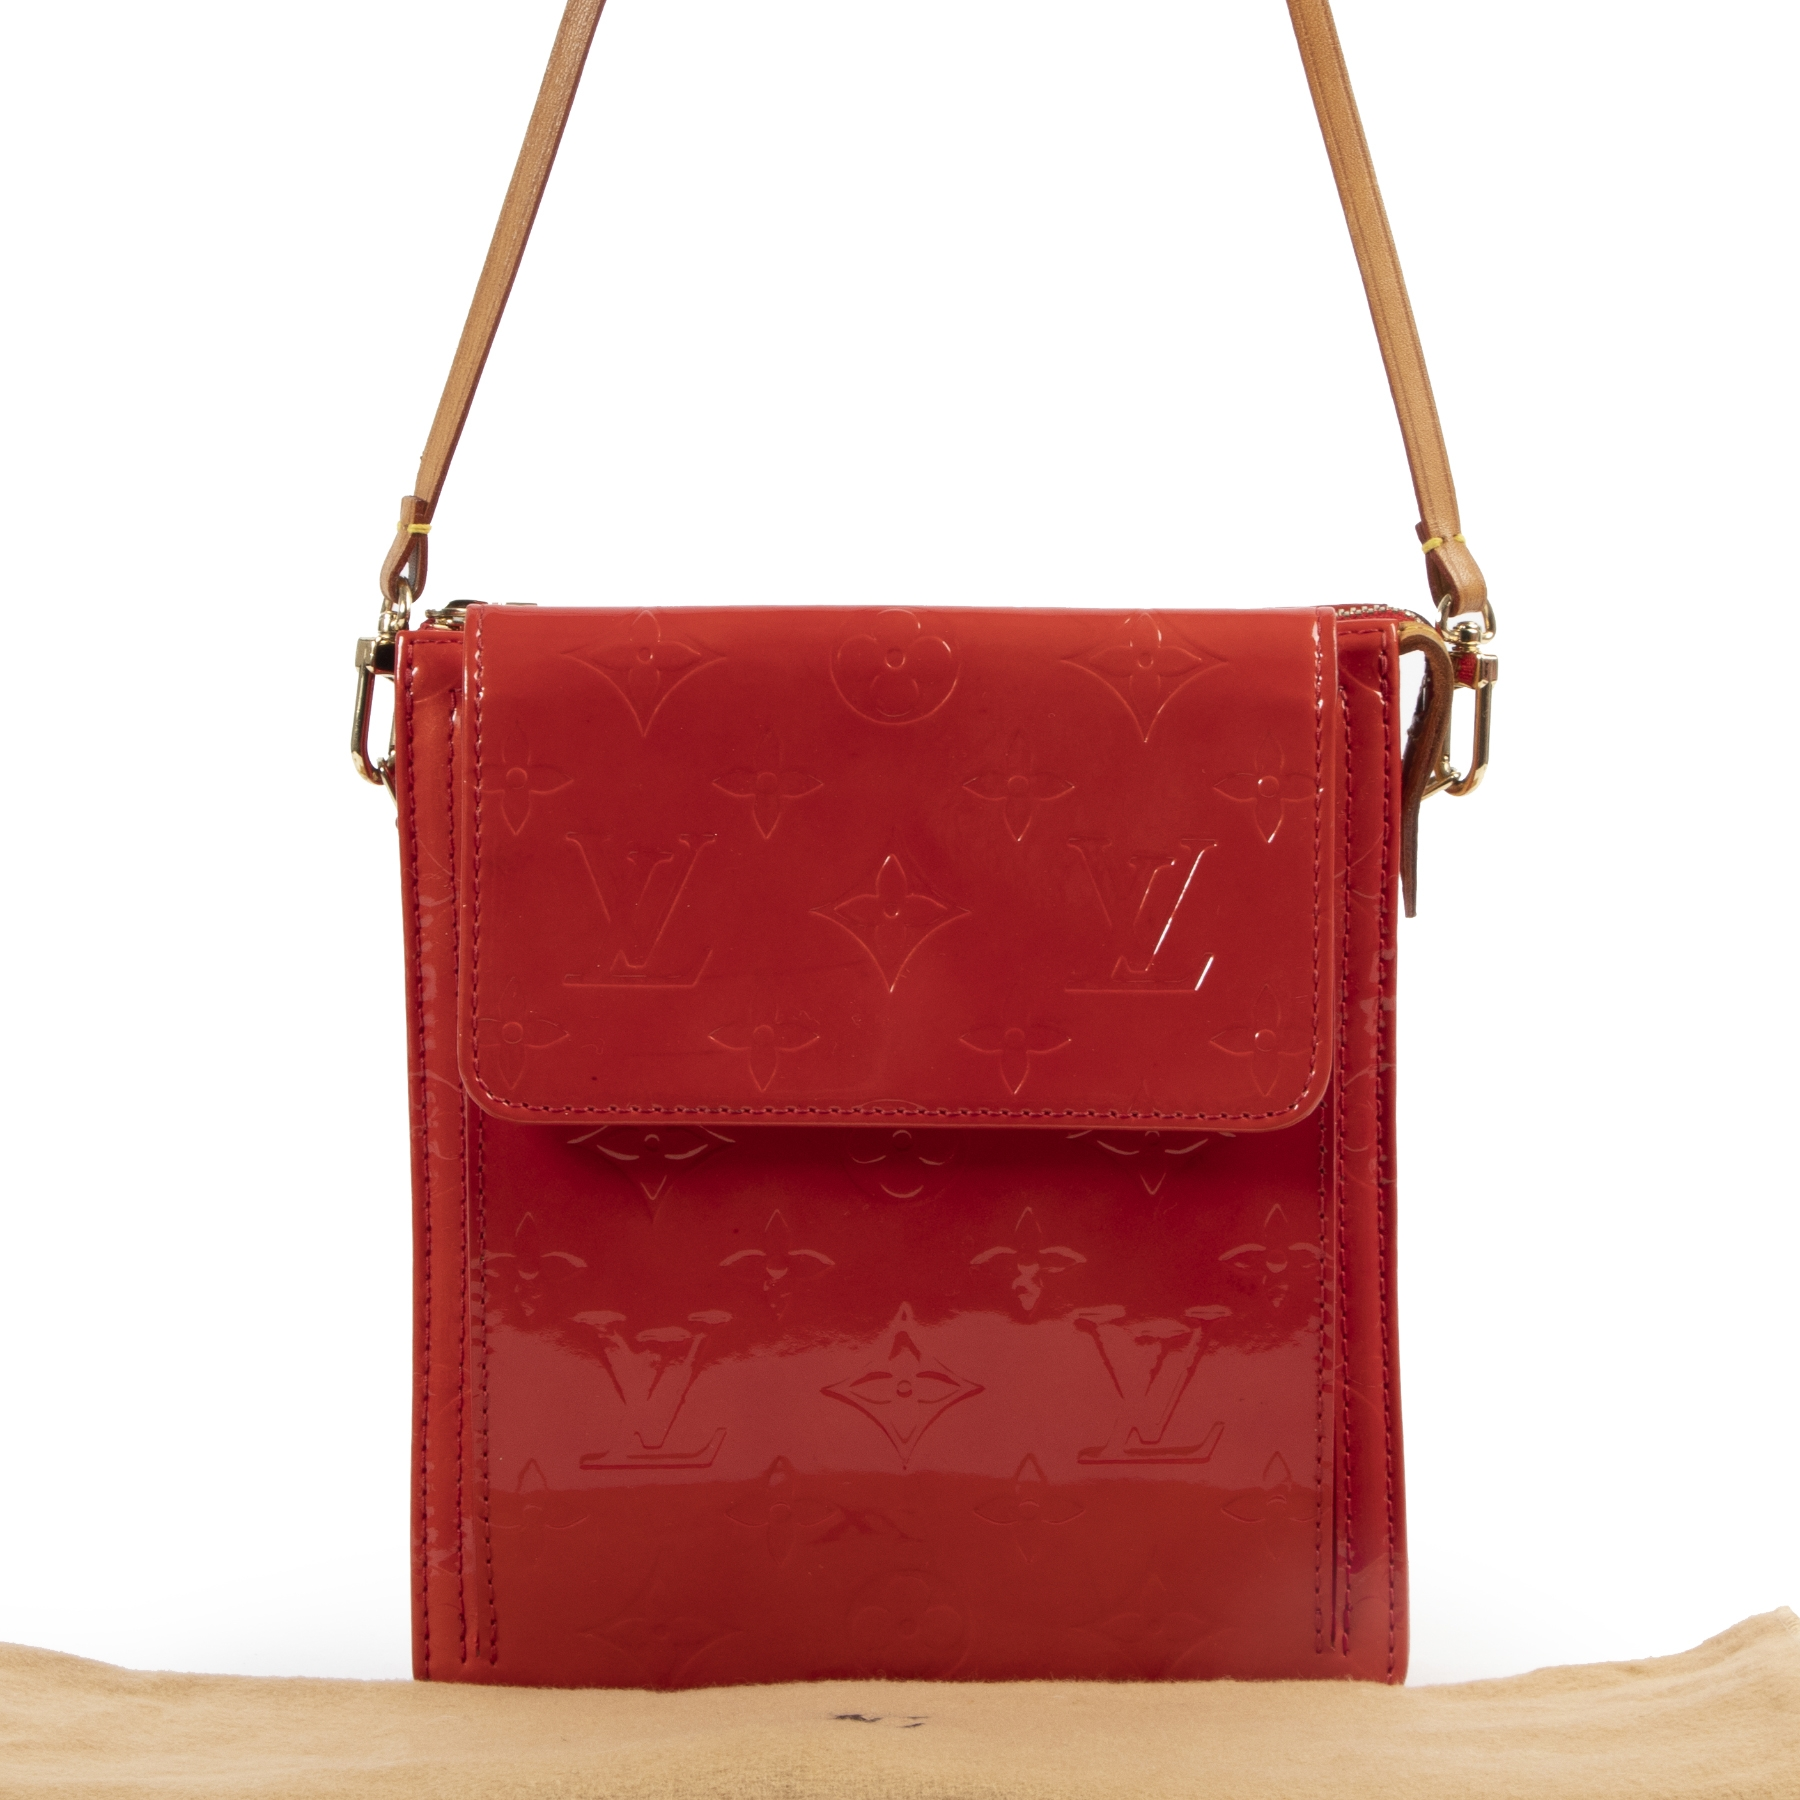 Louis Vuitton Red Patent Mott Shoulder Bag for sale online